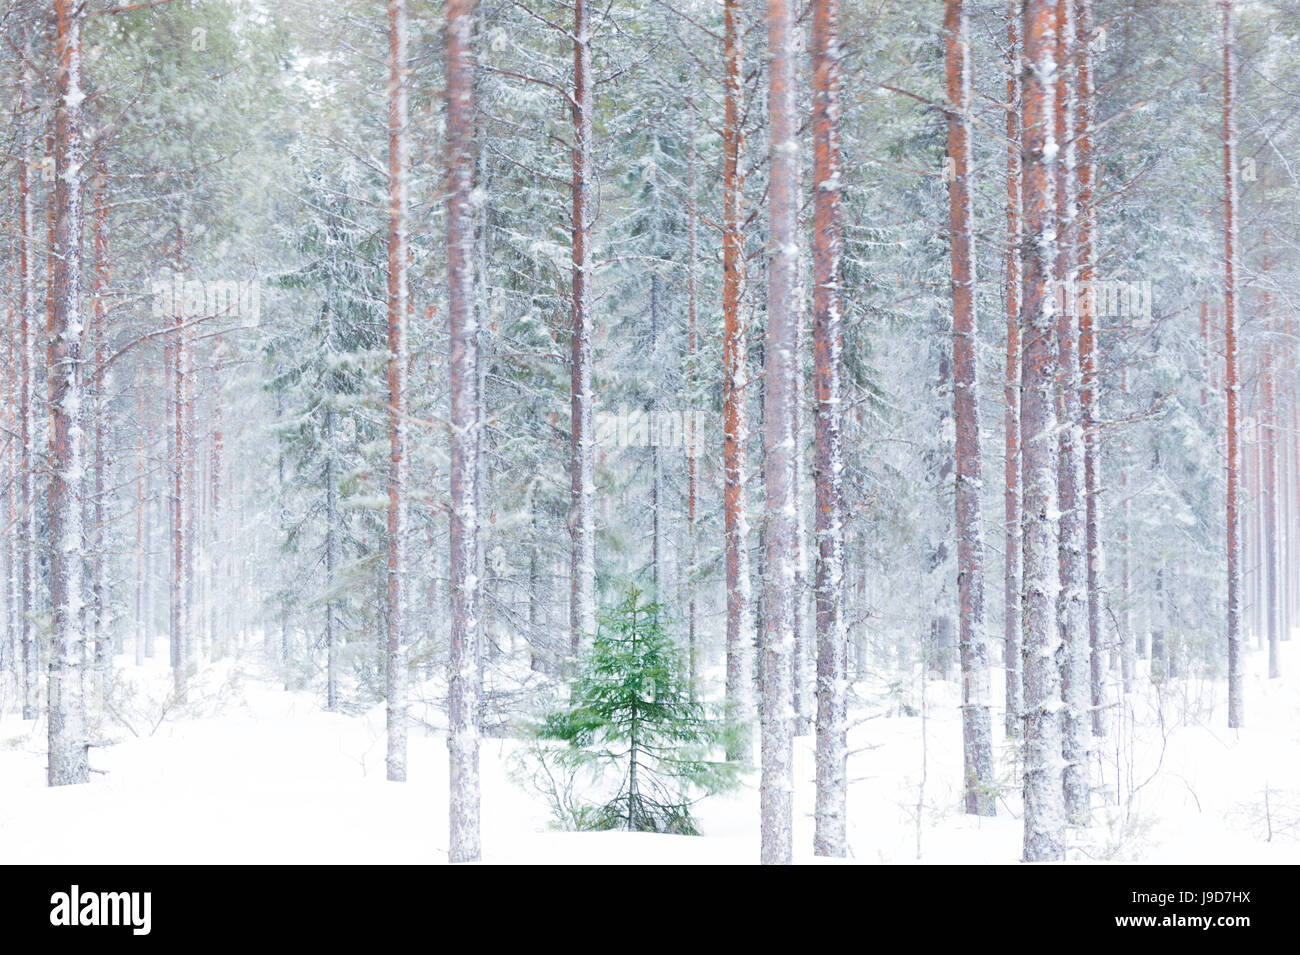 Tall trees in the snowy woods shrouded in the morning mist, Alaniemi, Rovaniemi, Lapland region, Finland, Europe - Stock Image